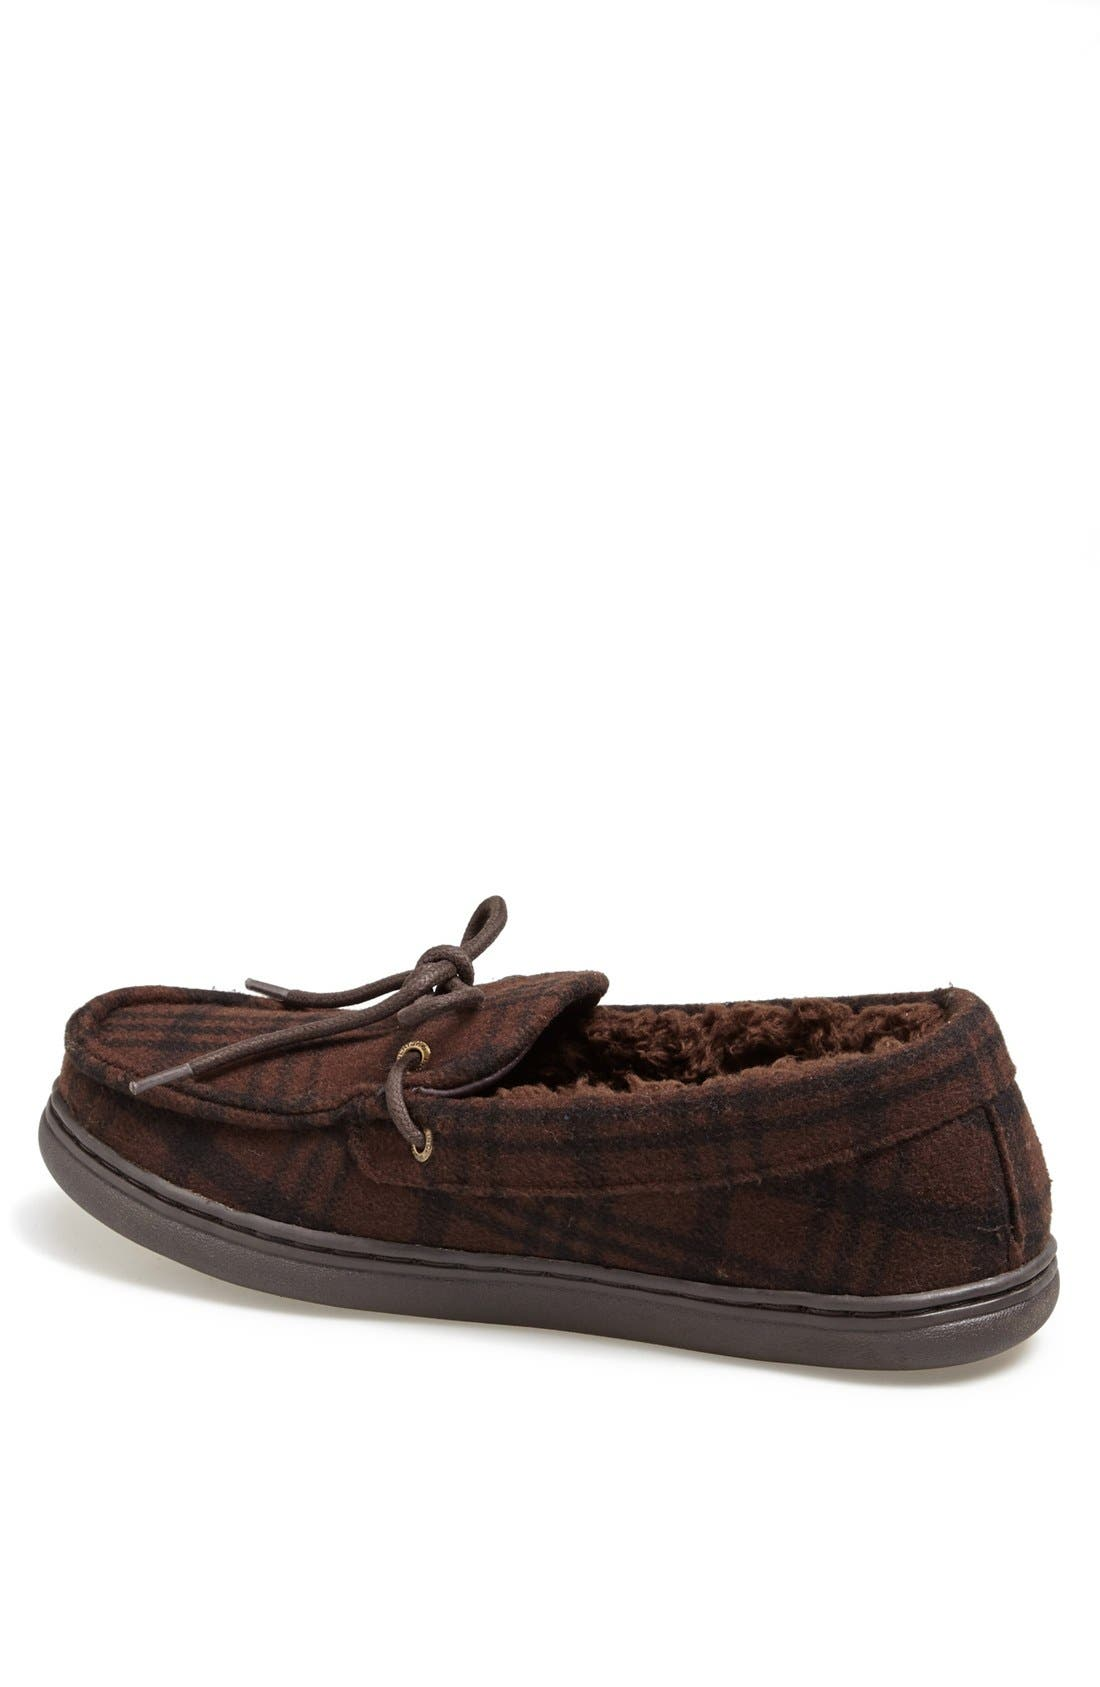 Alternate Image 2  - Woolrich 'Taylorville' Slipper